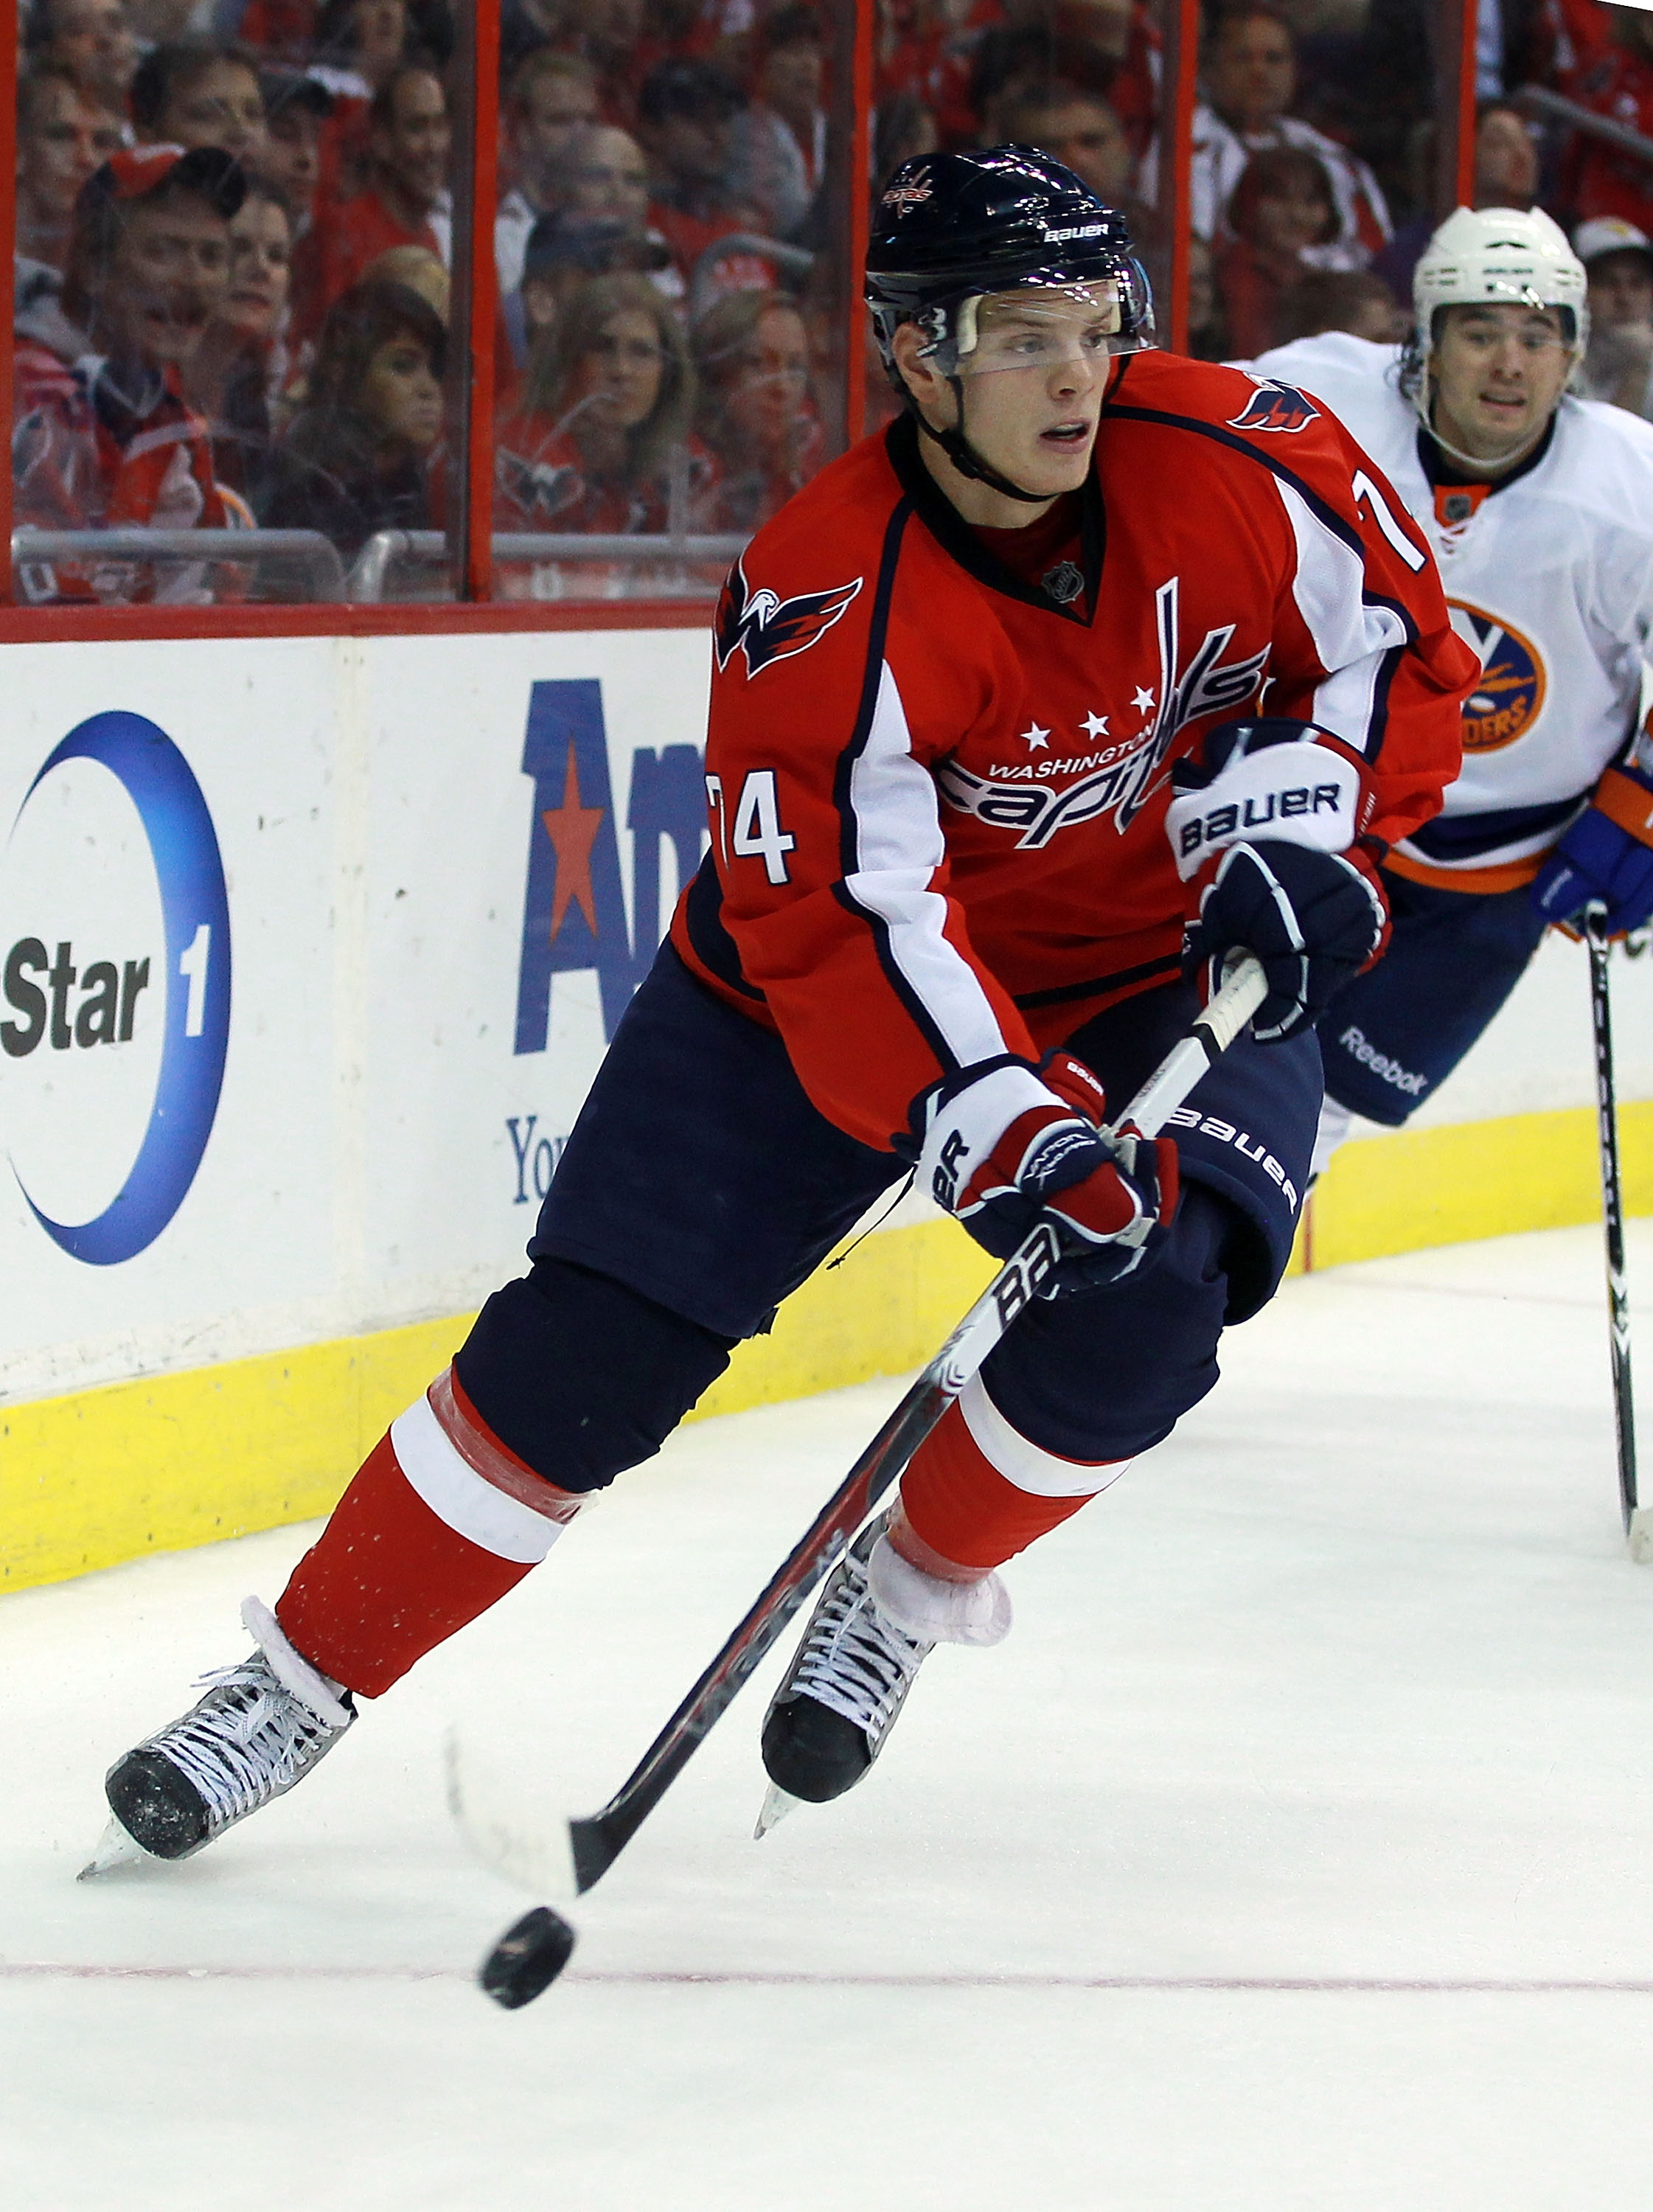 WASHINGTON - OCTOBER 13: John Carlson #74 of the Washington Capitals skates against the New York Islanders at the Verizon Center on October 13, 2010 in Washington, DC.  (Photo by Bruce Bennett/Getty Images)